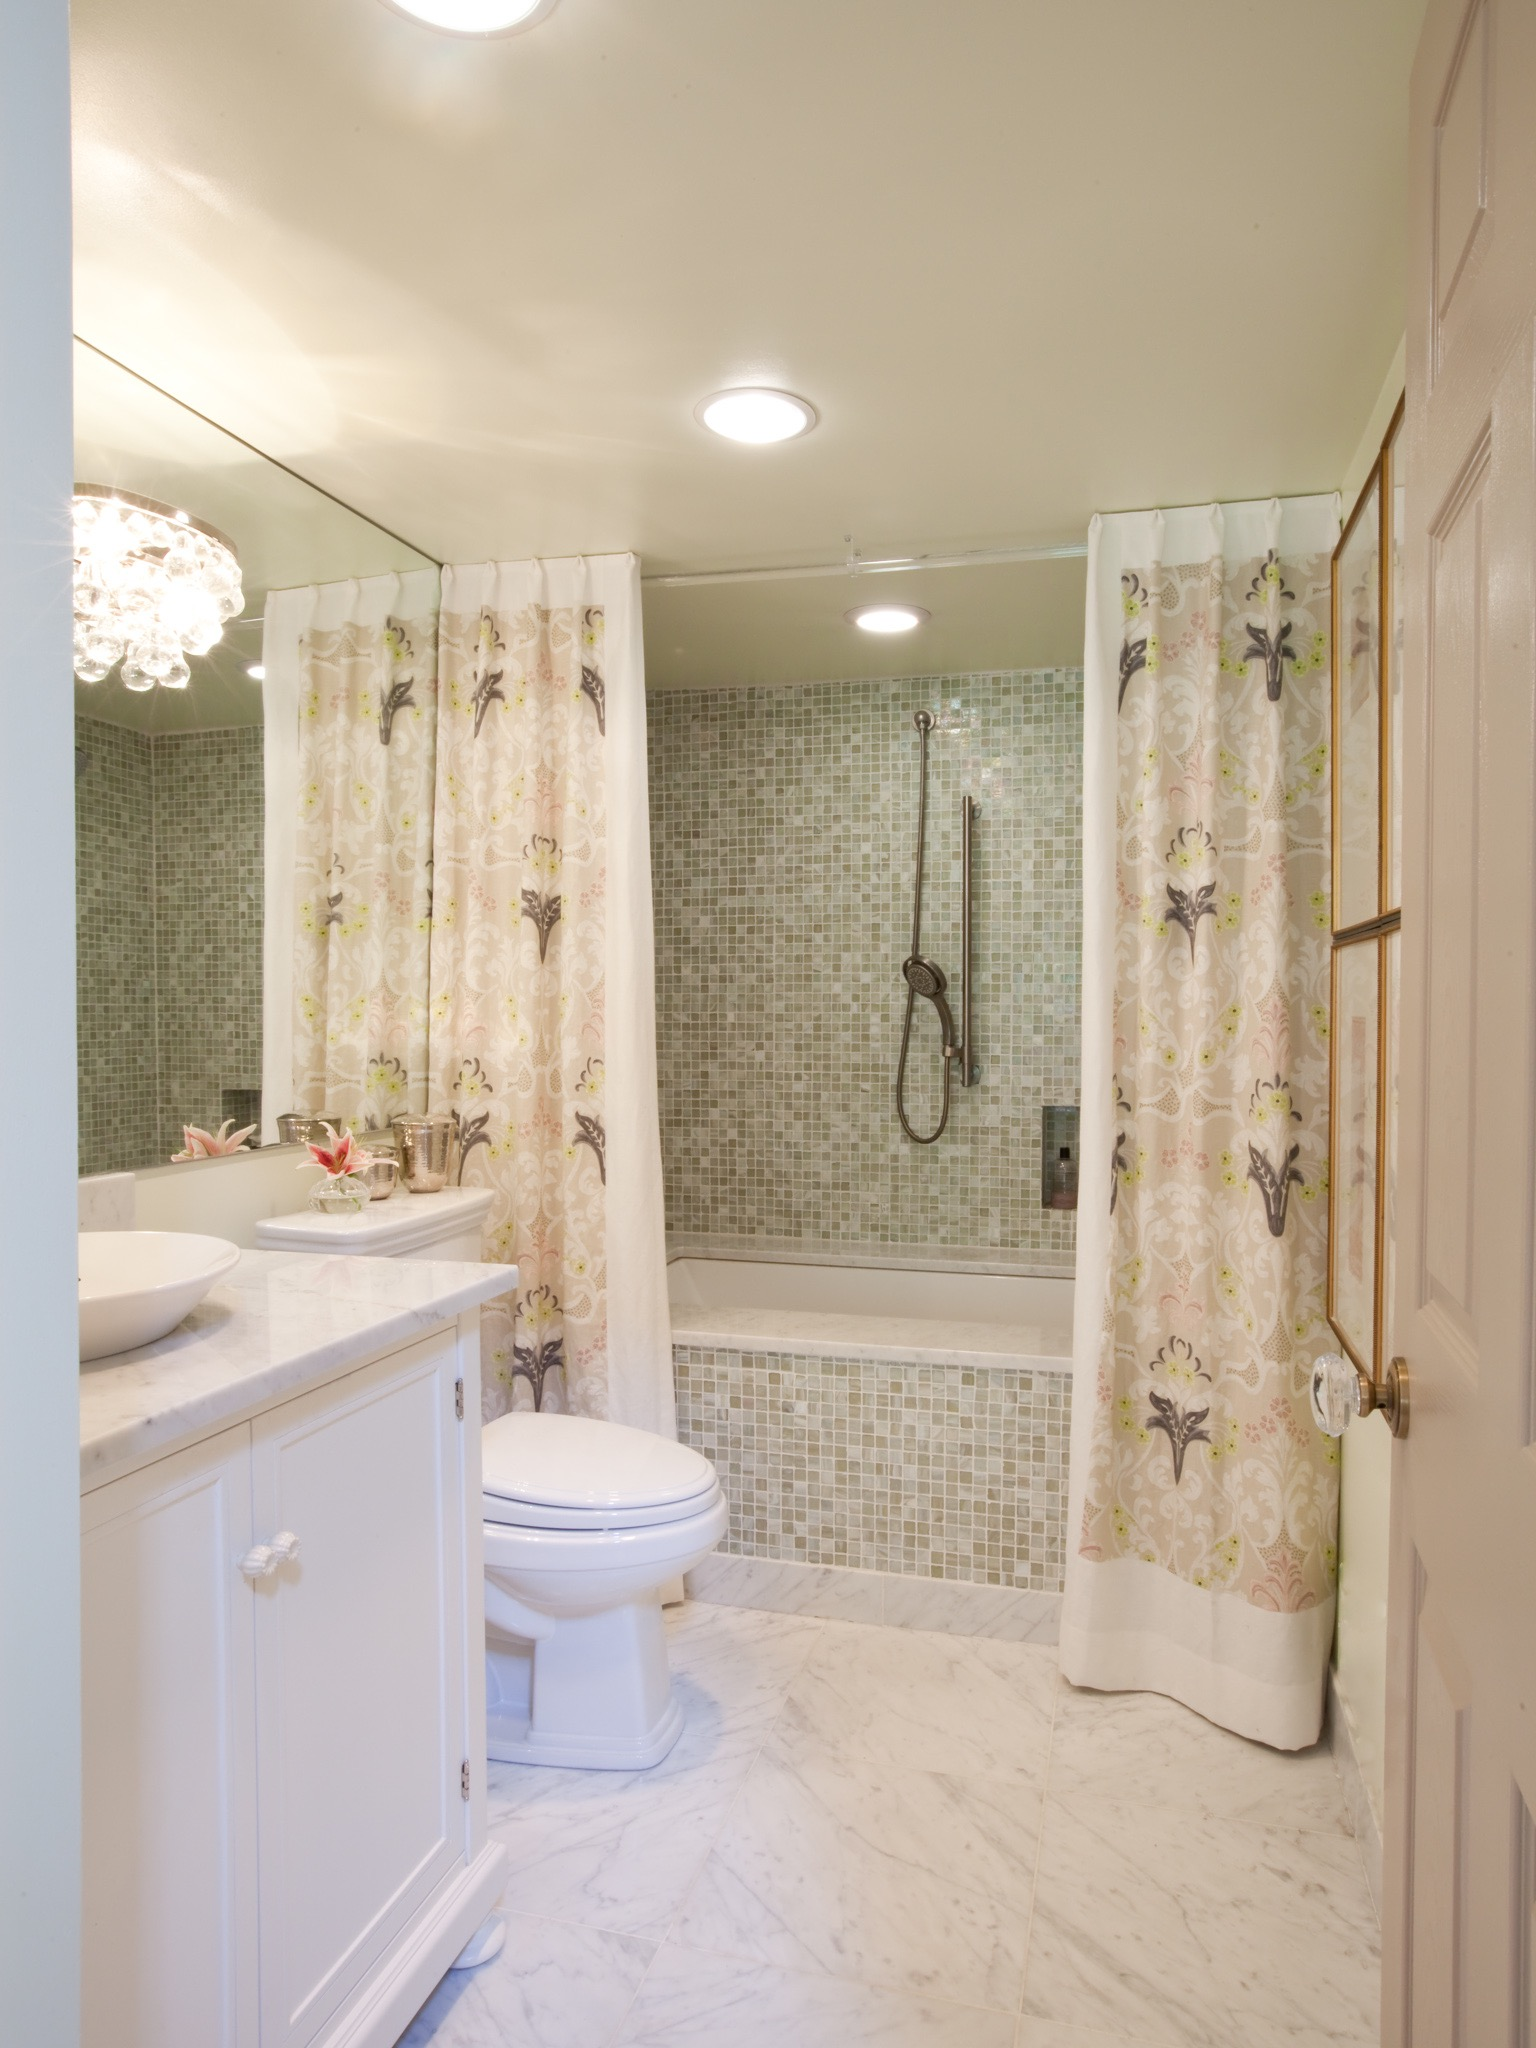 Small Bathroom With Mosaic Tile And Lavender Print Shower Curtain (View 12 of 14)